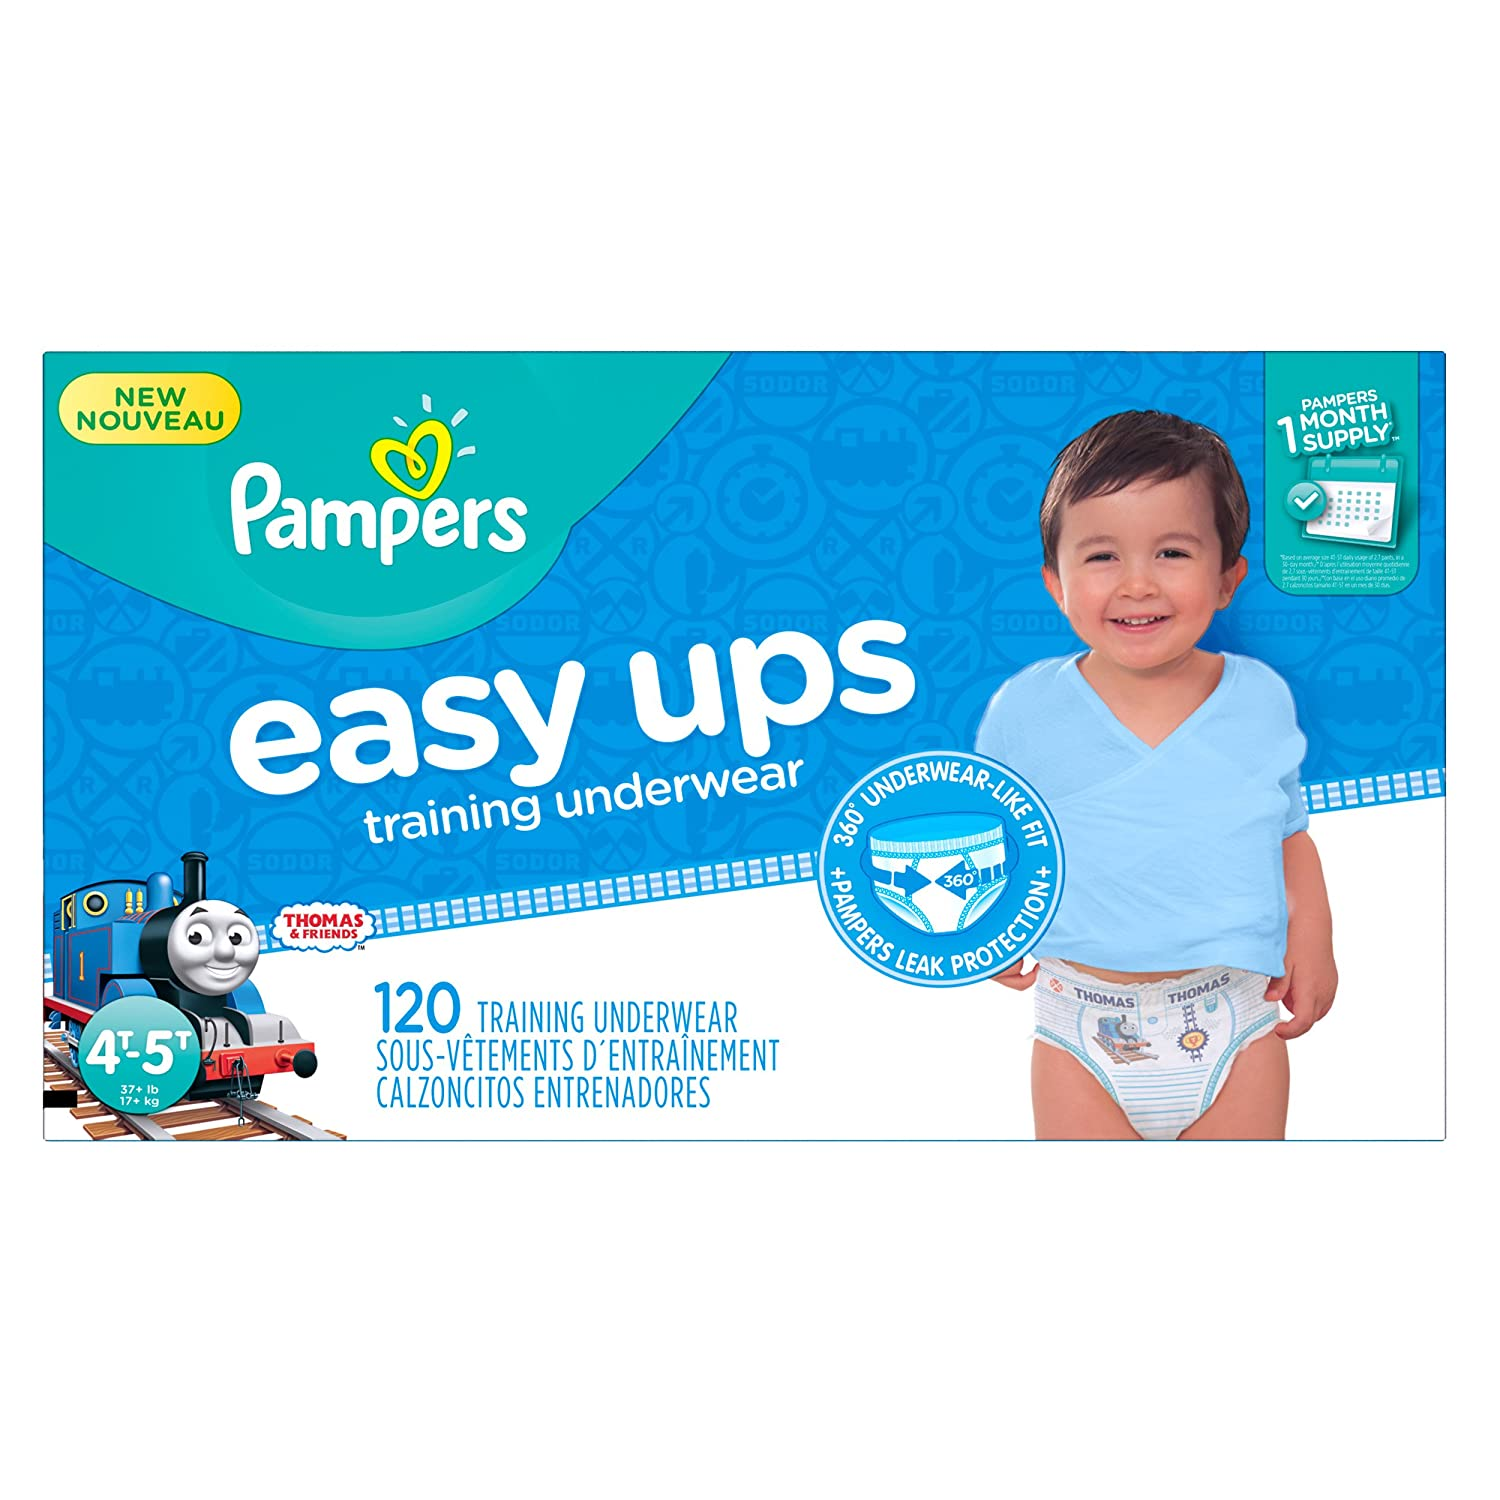 Amazon pampers easy ups training pants disposable diapers for amazon pampers easy ups training pants disposable diapers for boys size 6 4t 5t 120 count one month supply health personal care nvjuhfo Image collections